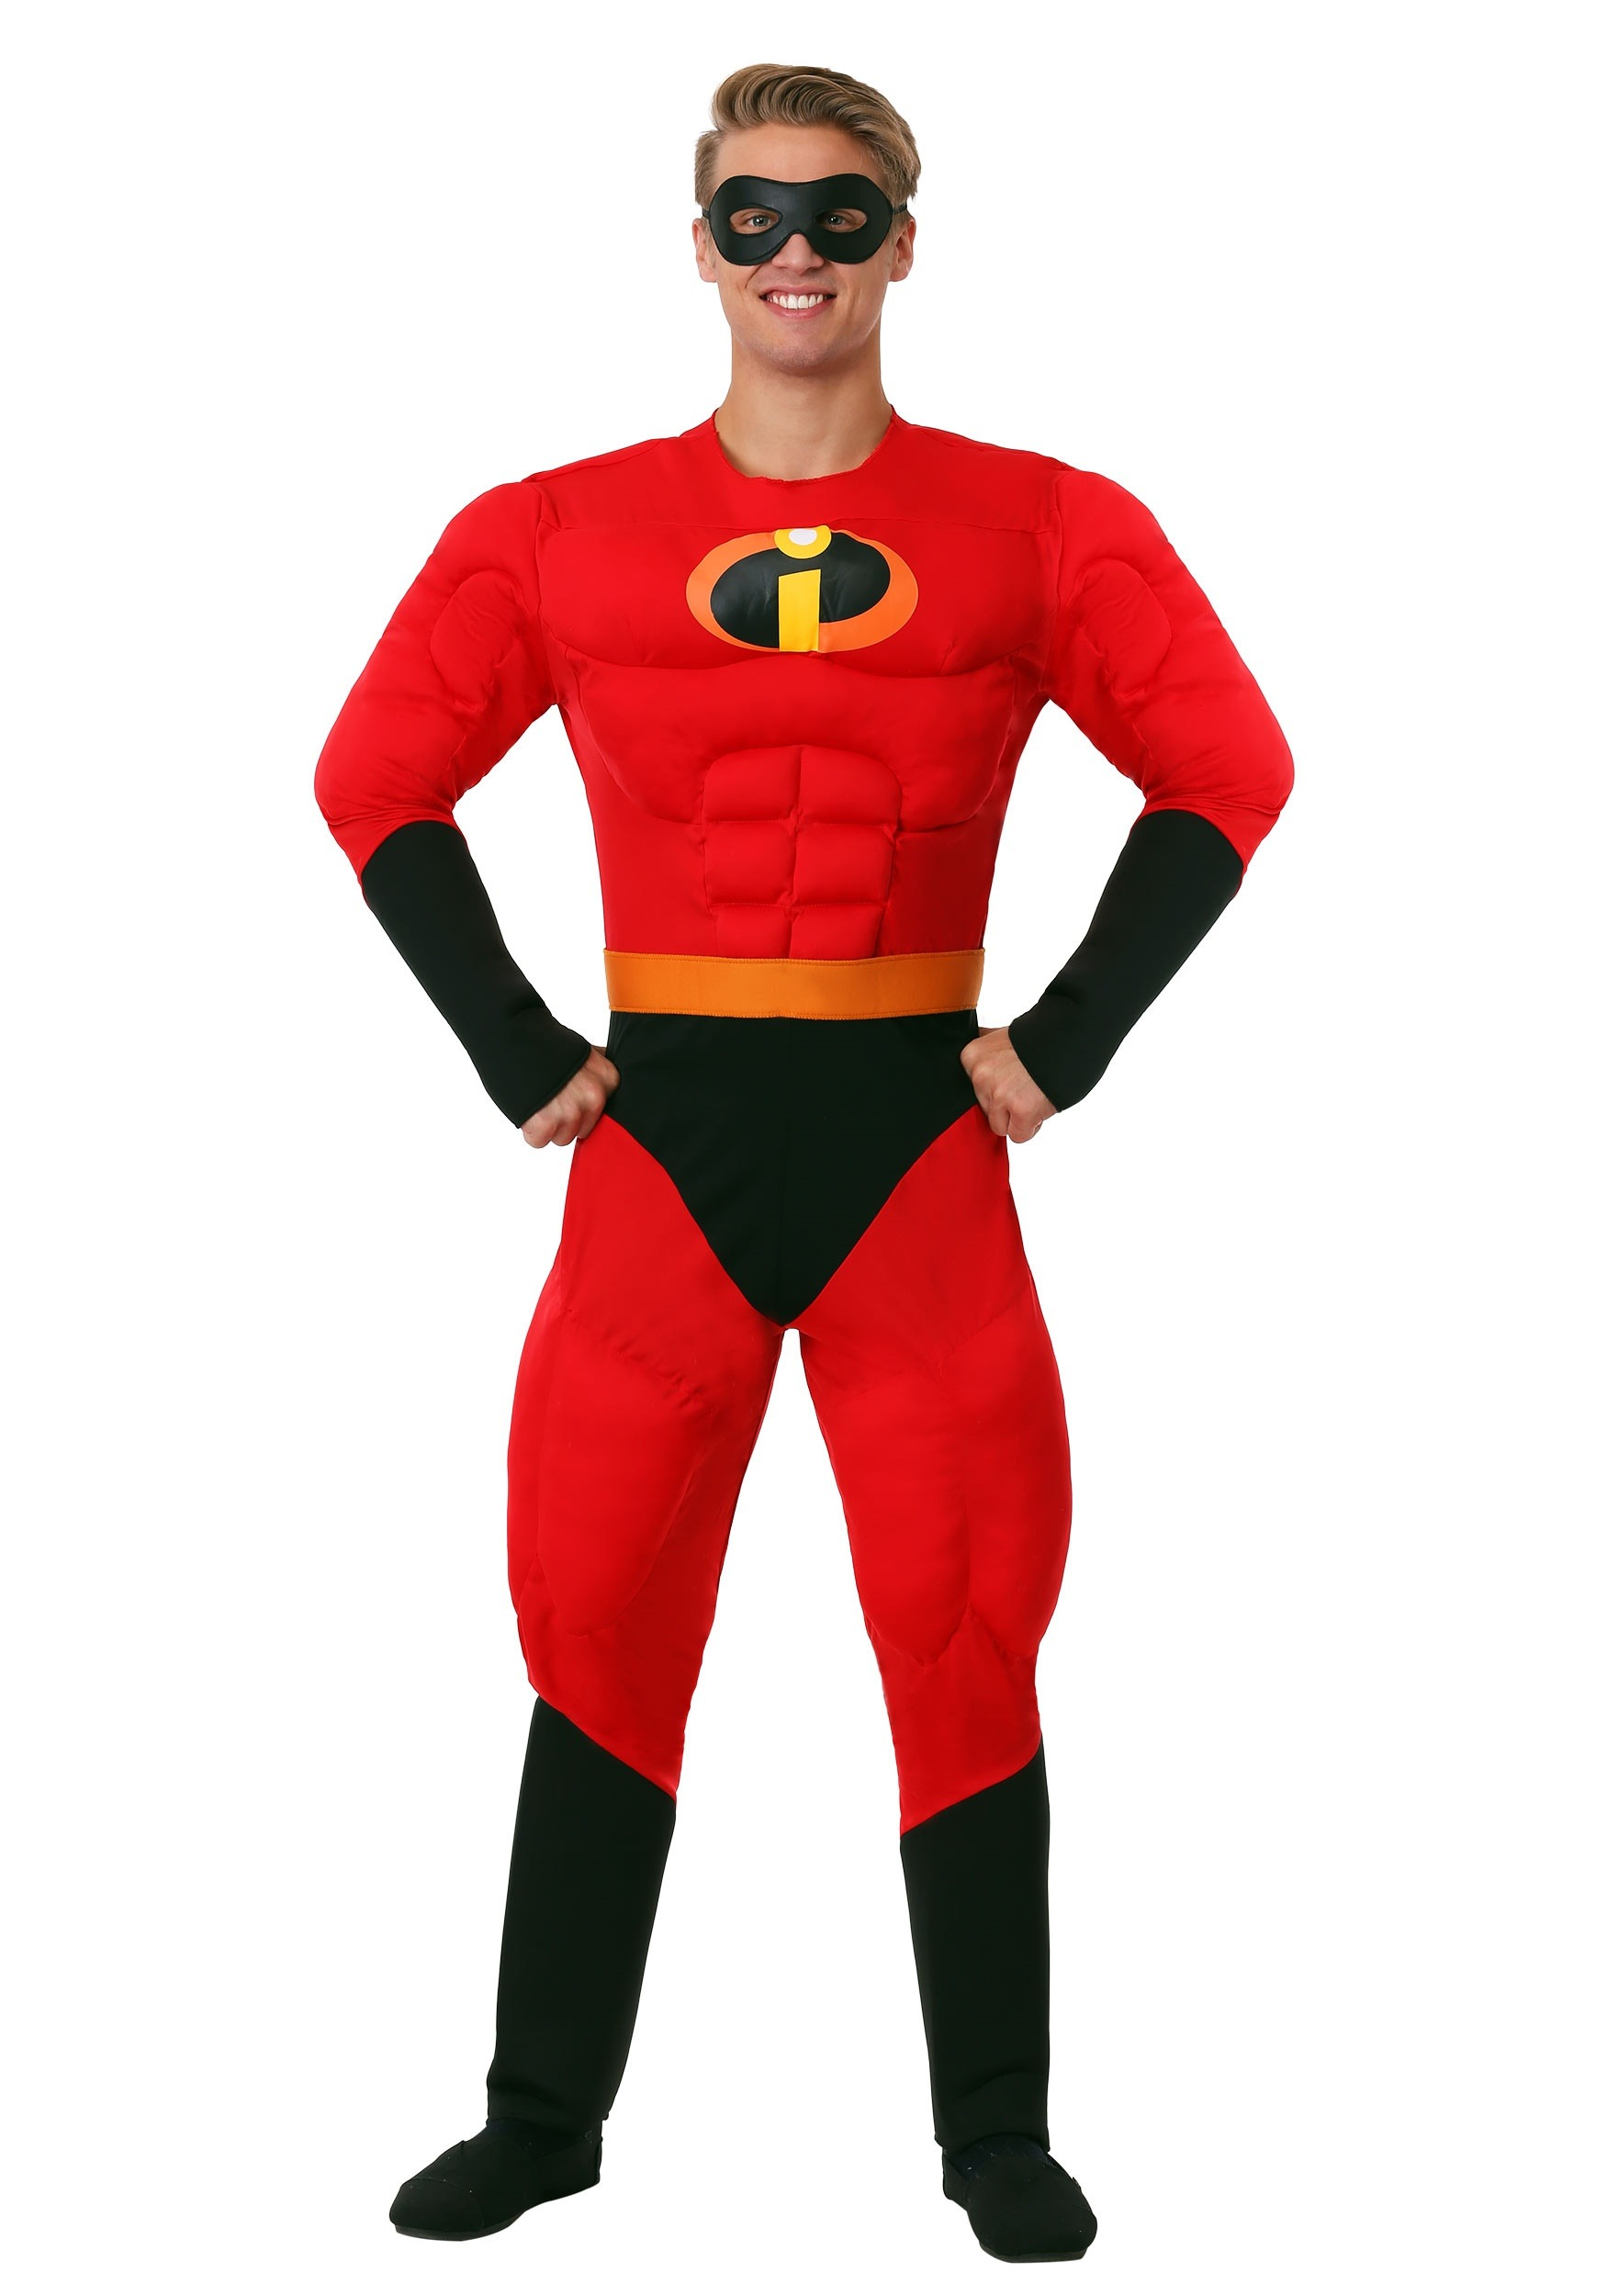 Adult Mr. Incredible Costume  sc 1 st  Halloween Costumes AU & Superhero Costumes - Adult Sexy Child Superhero Halloween Costumes